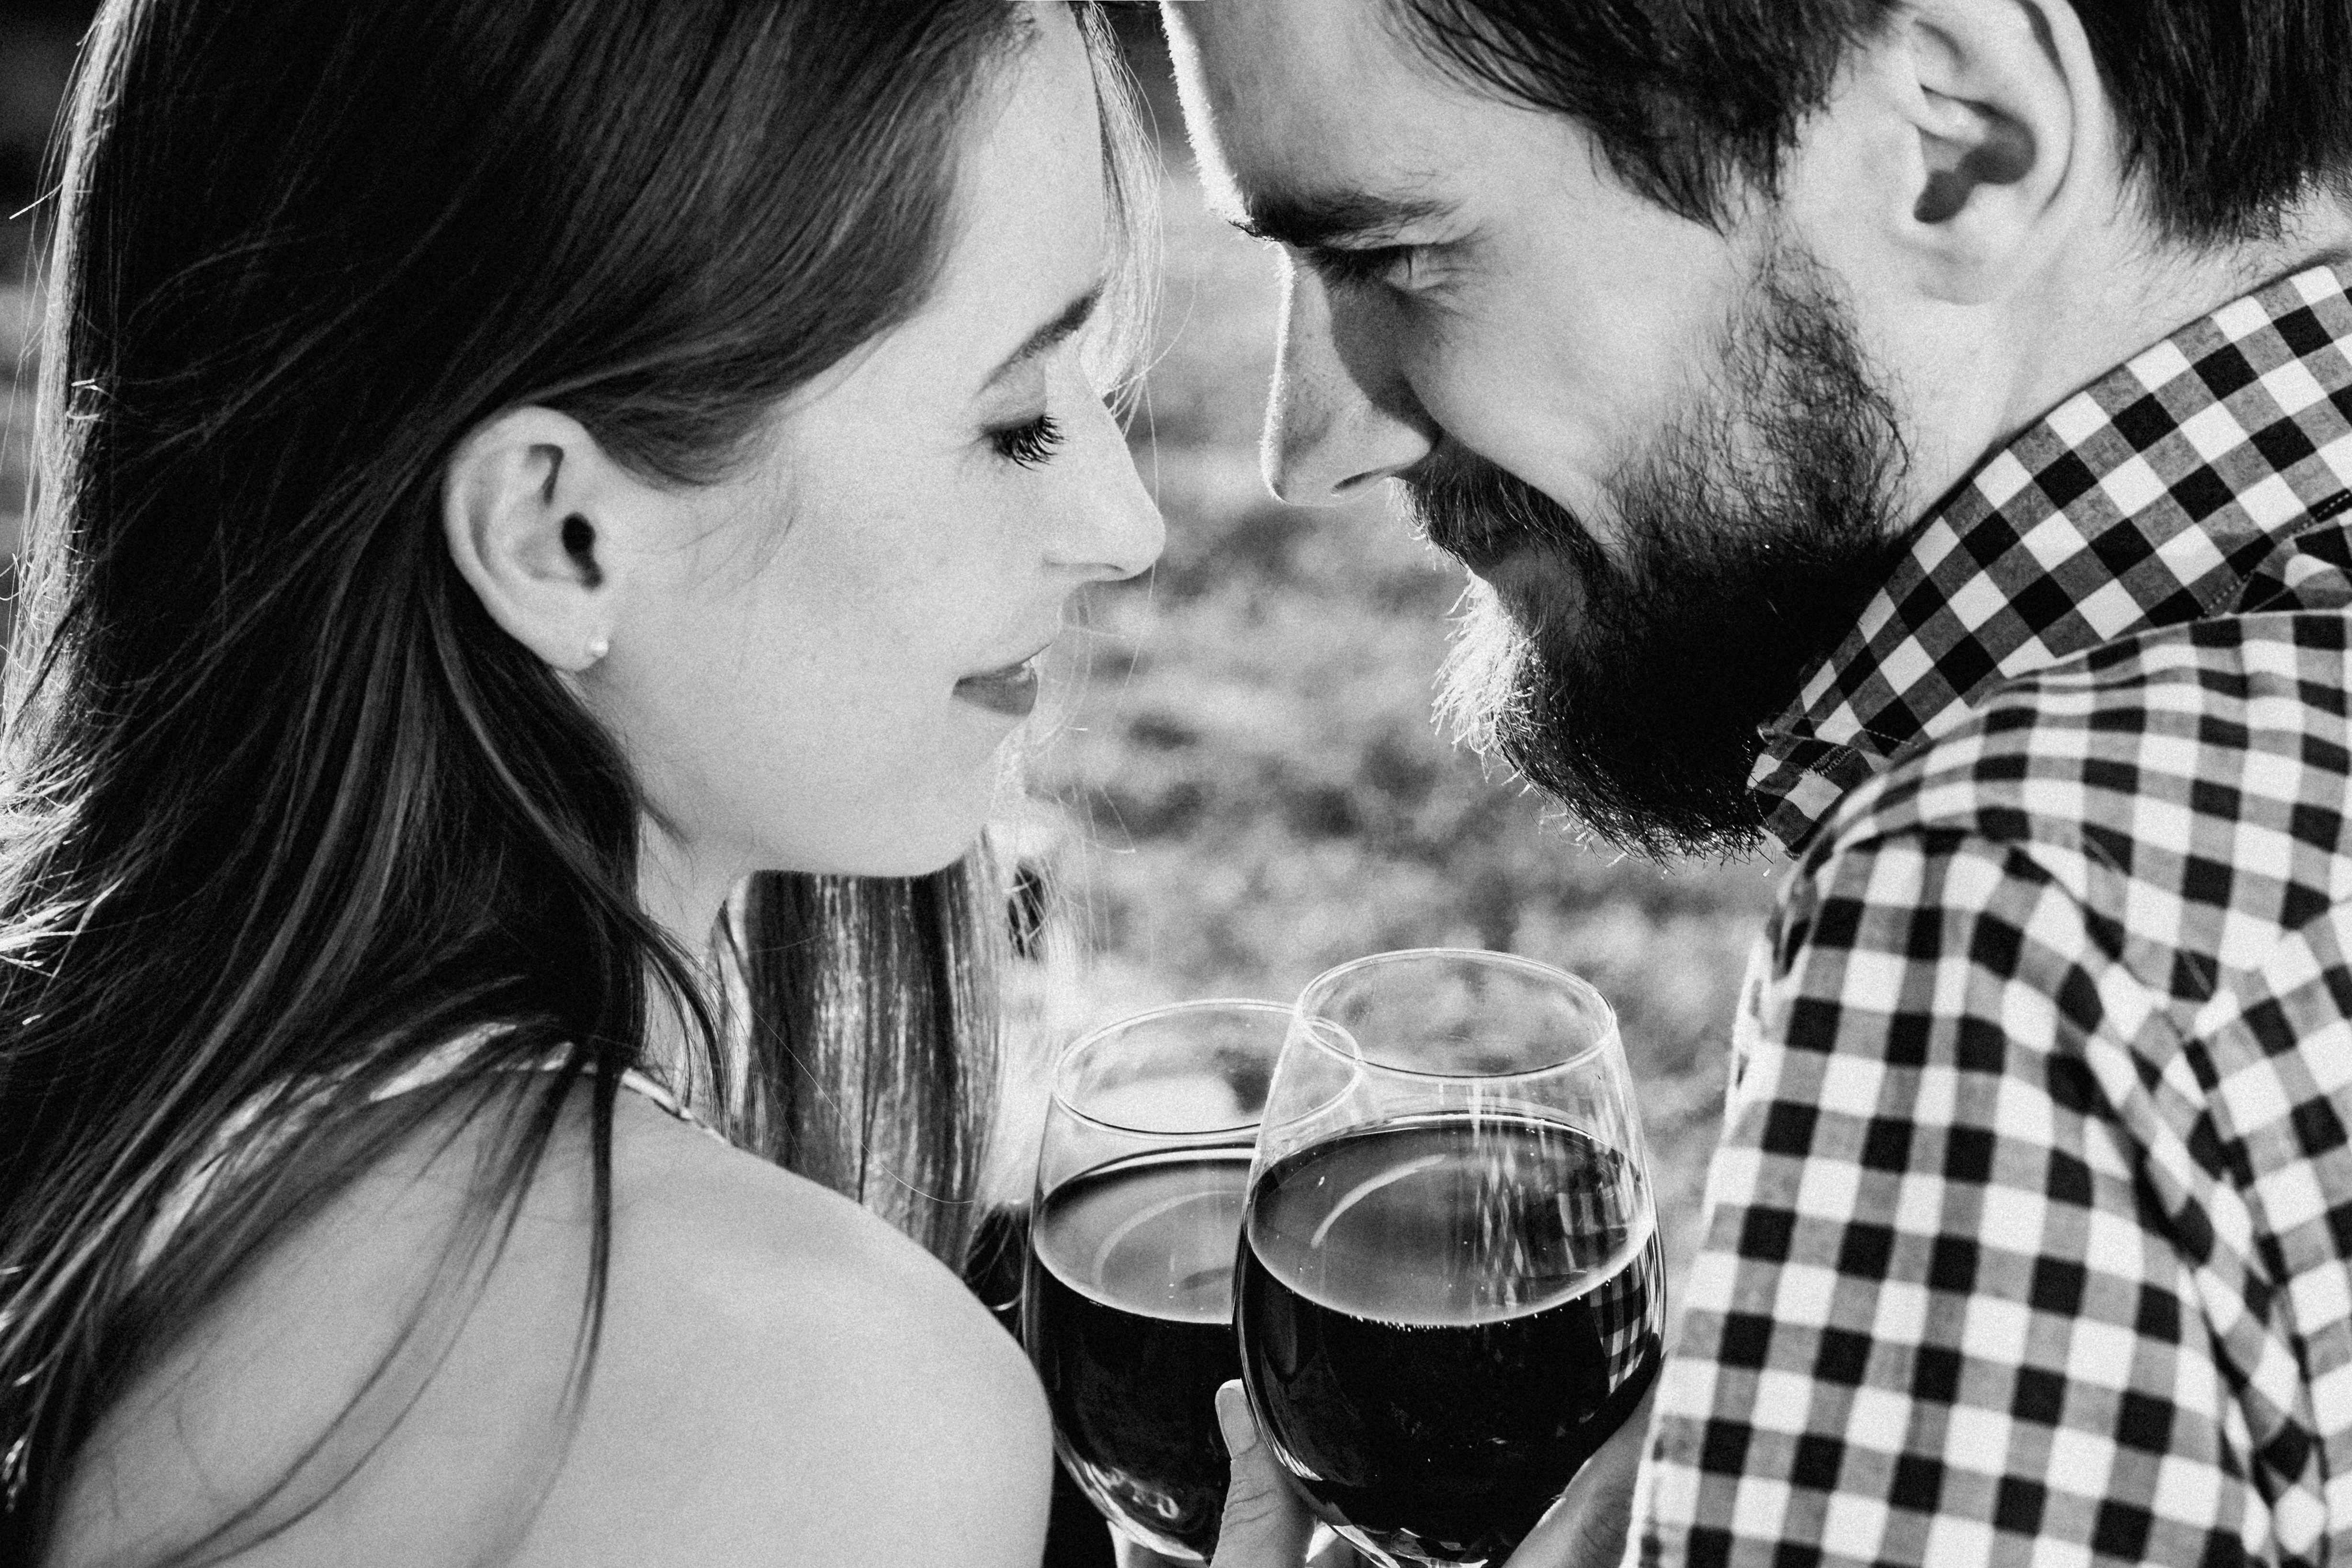 A couple drinking wine, Relationship, Romance, Romantic, Sitting, HQ Photo